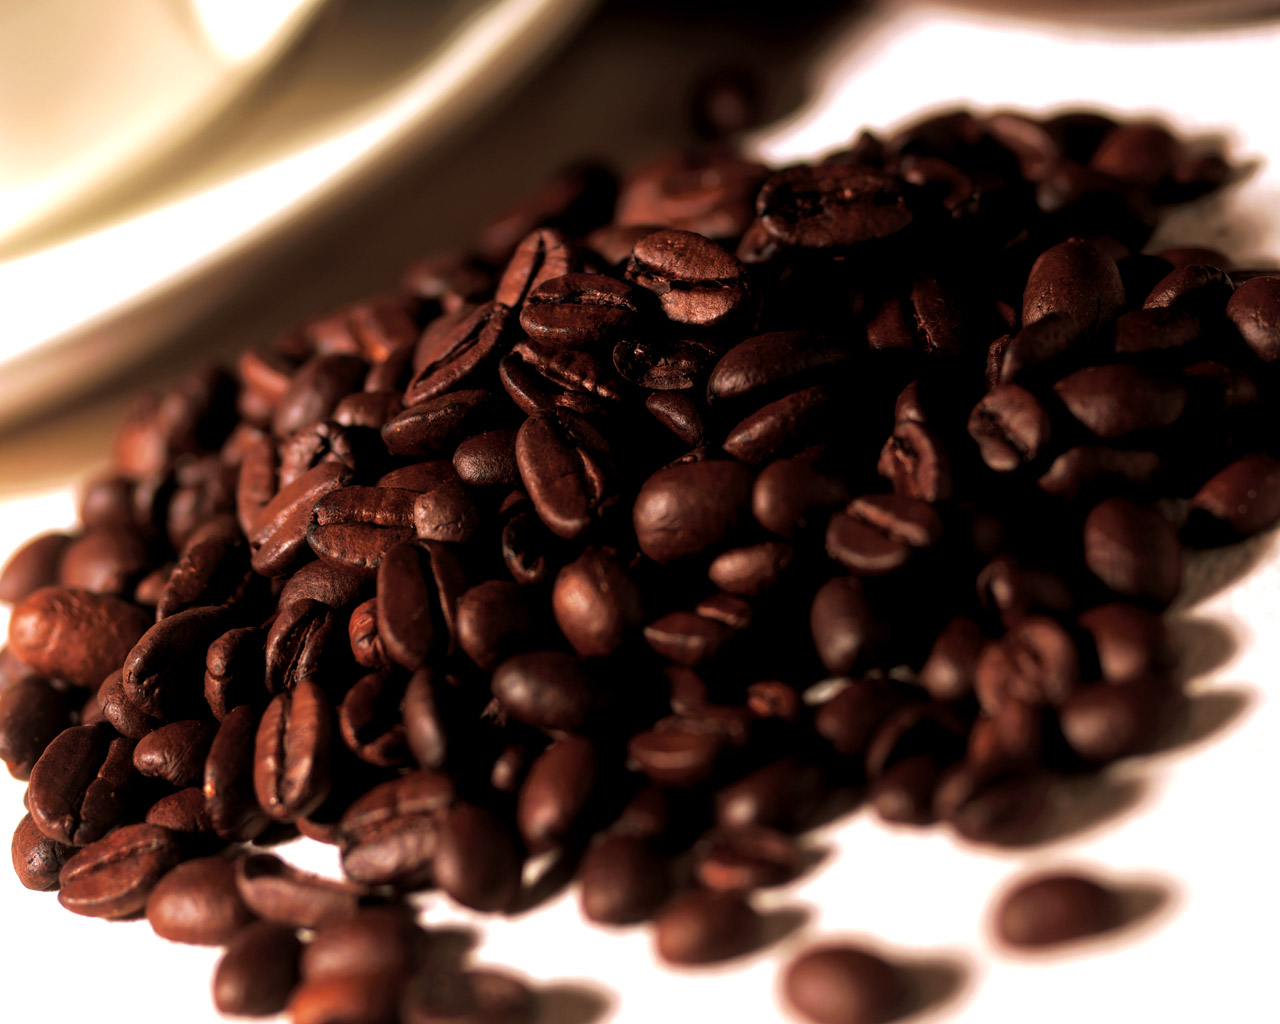 Coffee wallpaper high definition 4083